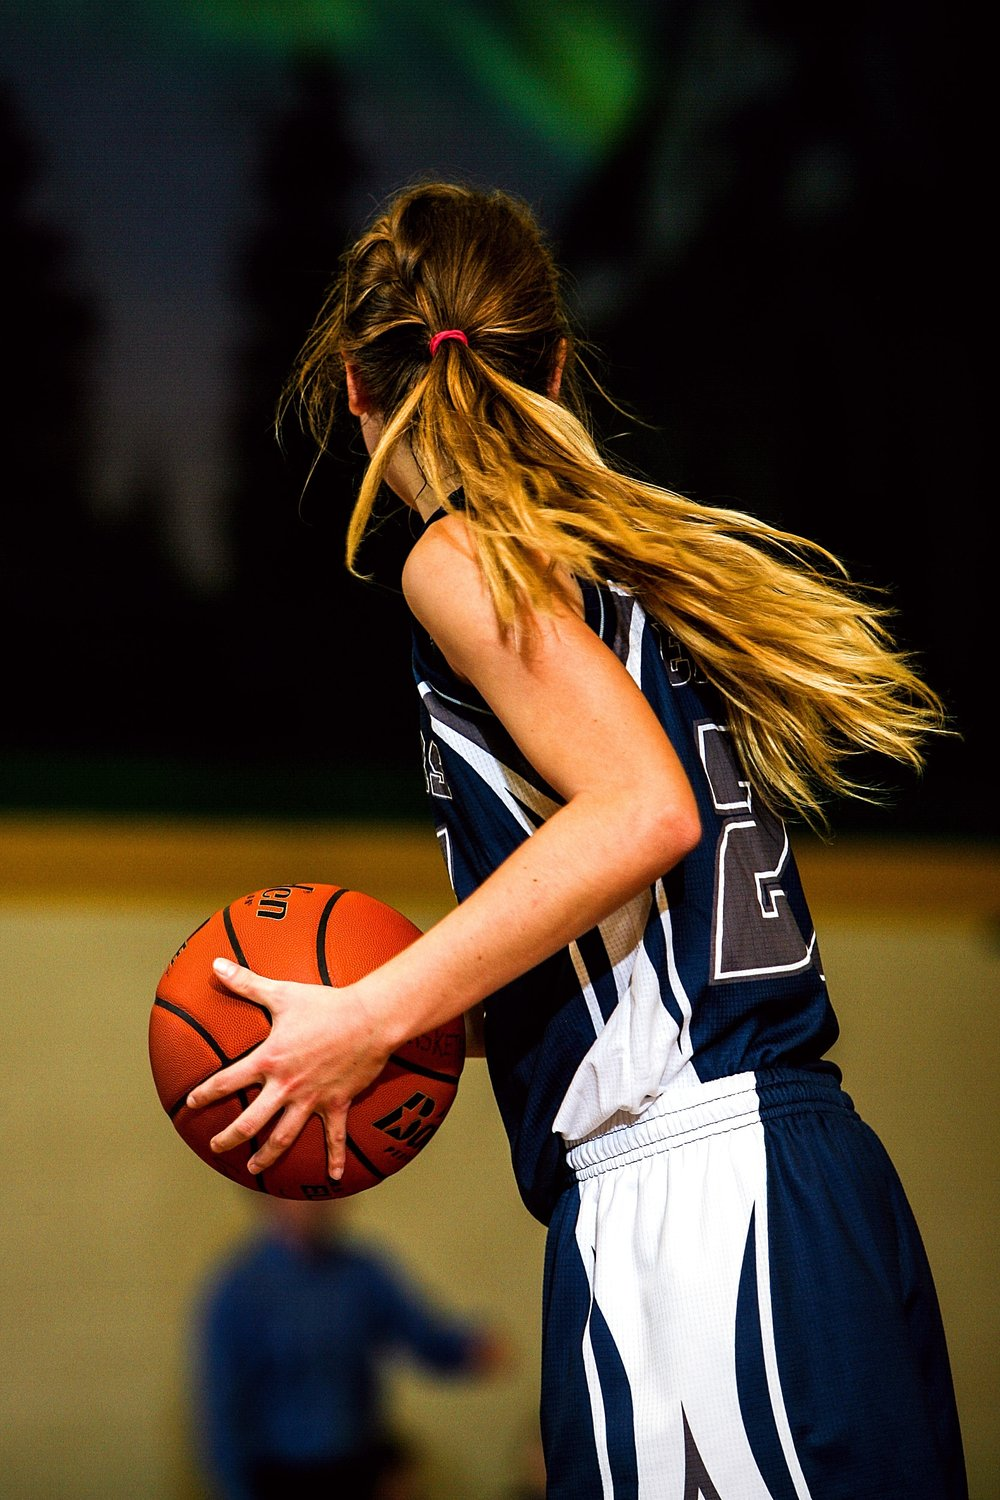 athlete-ball-basketball-159607.jpg